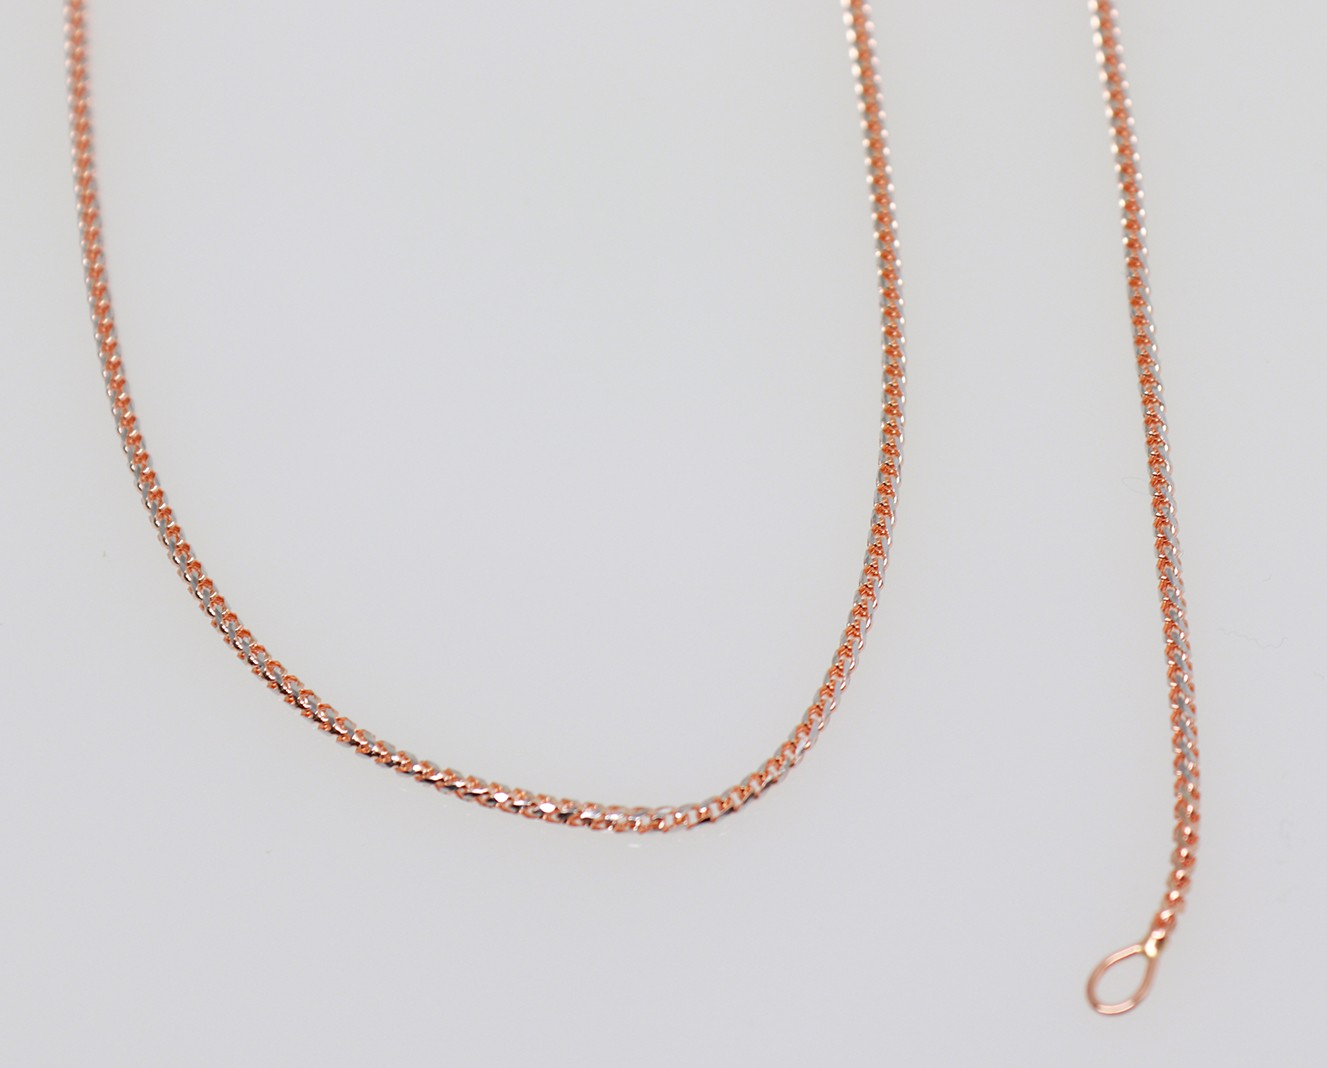 9ct rose gold chain & bracelet